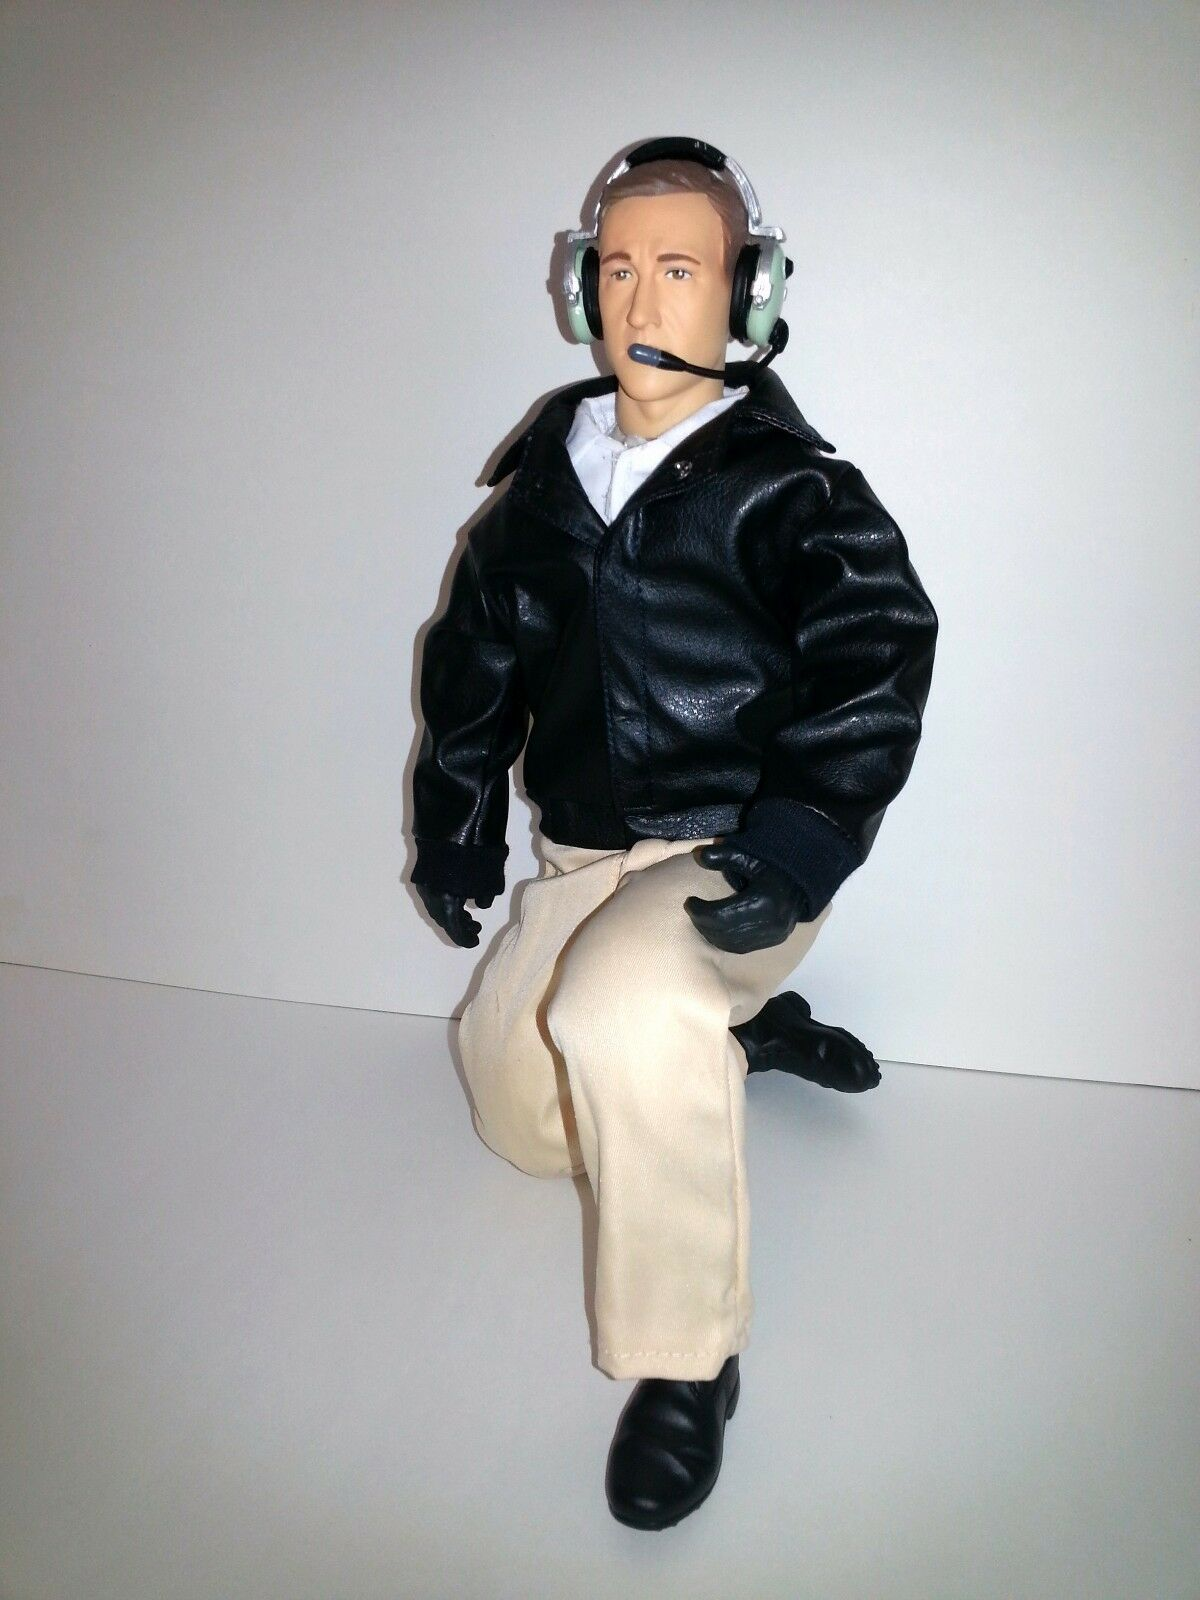 1/4.5 ~ 1/4 Scale 15  Tall Civilian RC Pilot Figure w/Servo Operated Moving Head